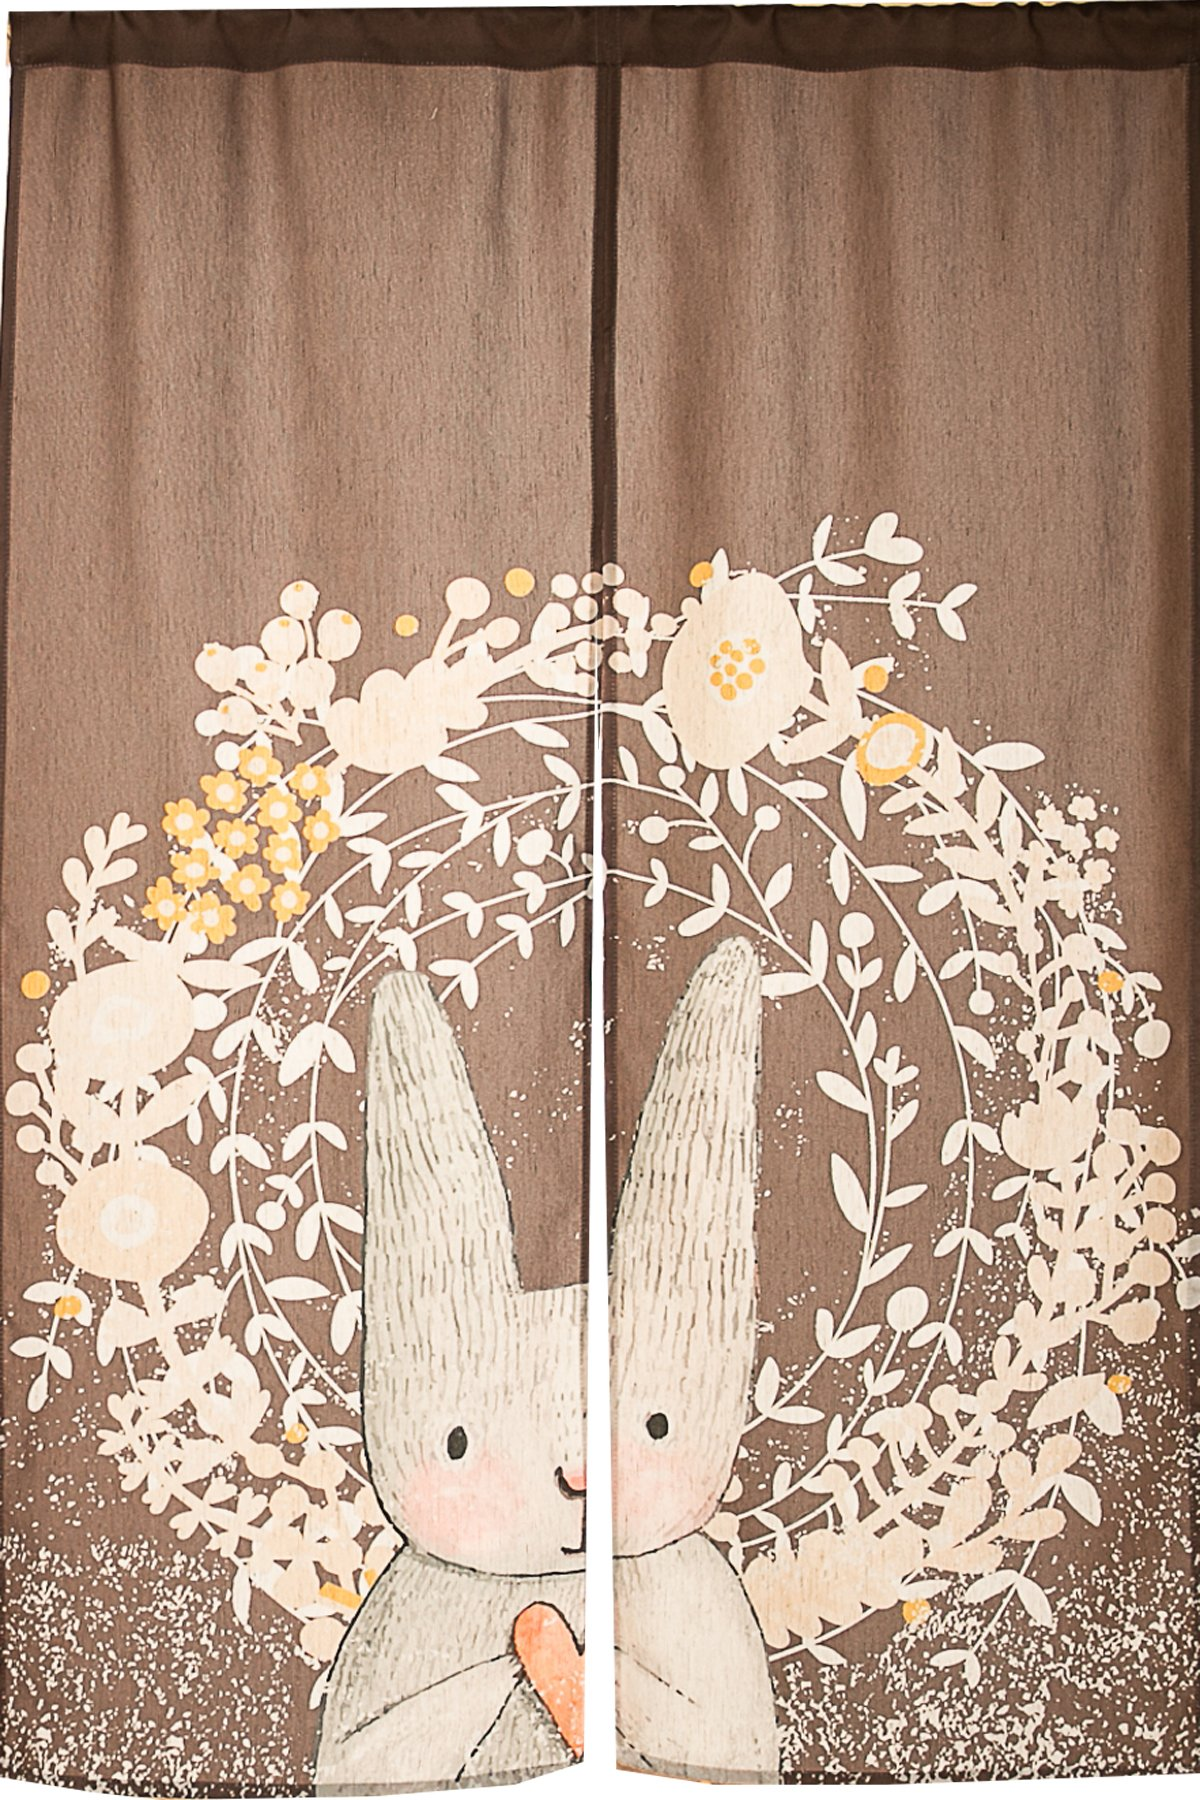 Japanese Noren Doorway Curtain Tapestry Cat Story (Bunny Love)